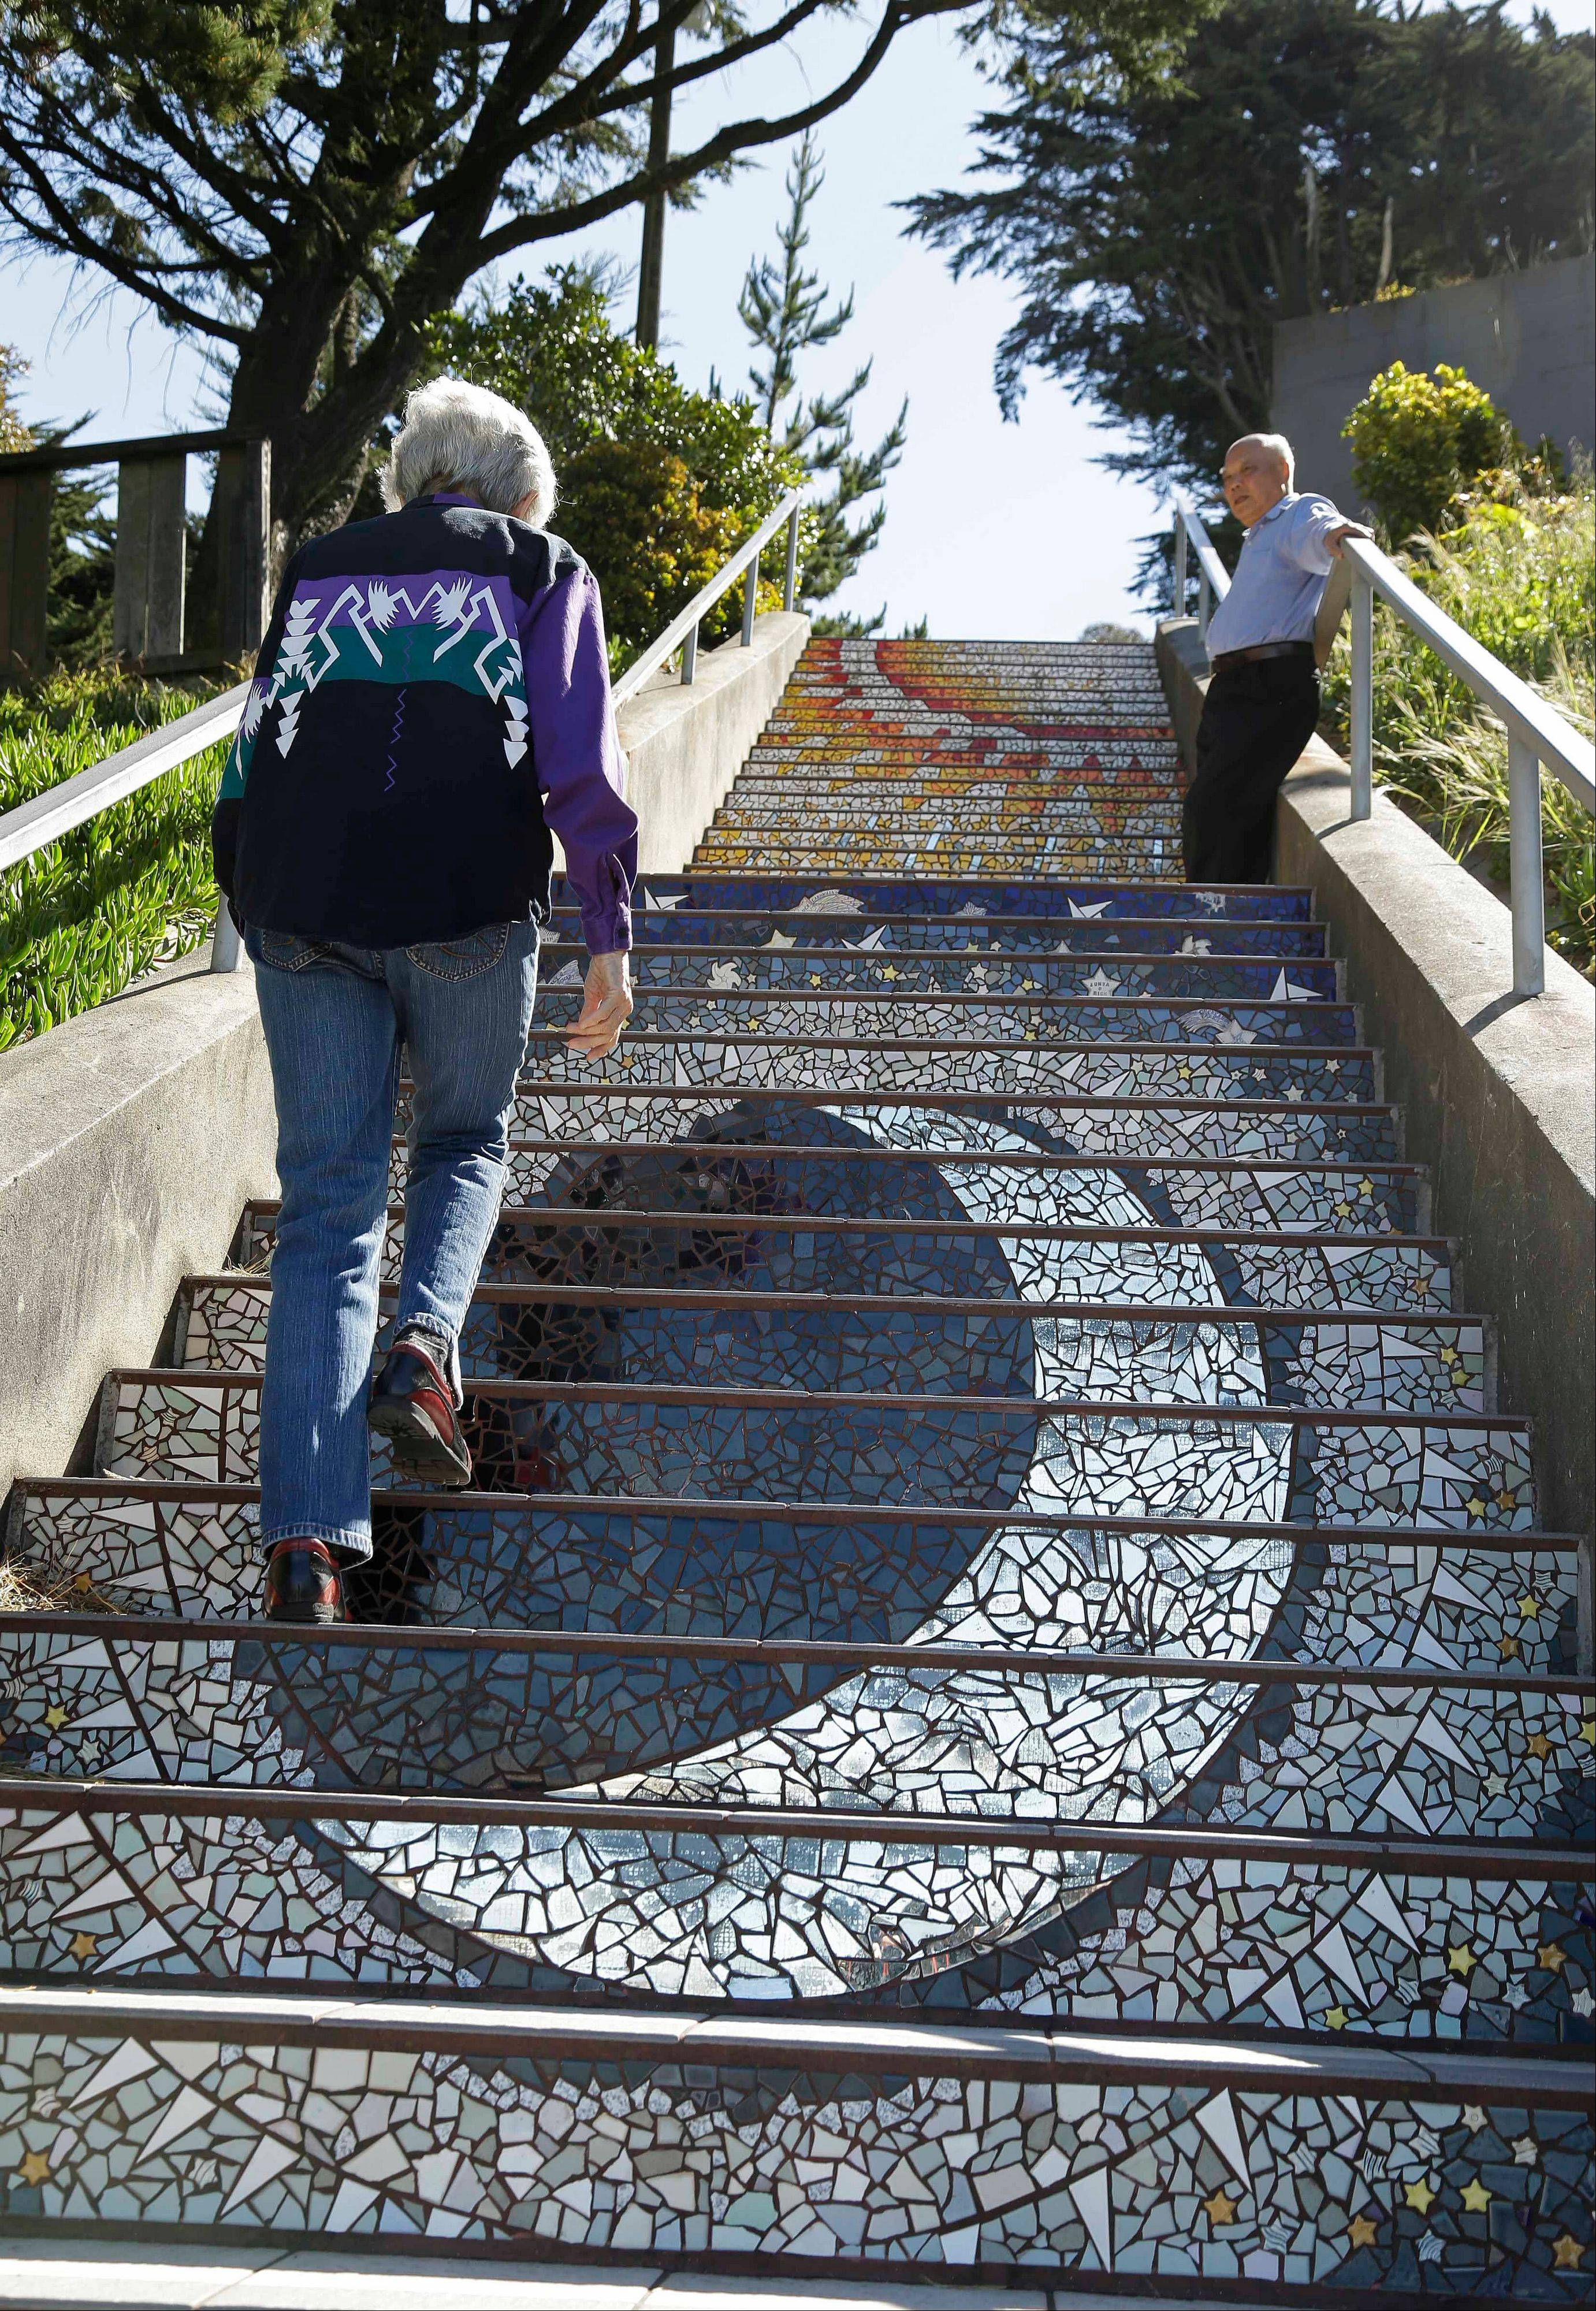 Ninety-year-old Adah Bakalinsky, left, climbs the 163-step mosaic stairway of Golden Gate Heights in San Francisco. In San Francisco, Bakalinsky says there are more than 650 public stairways in her city.